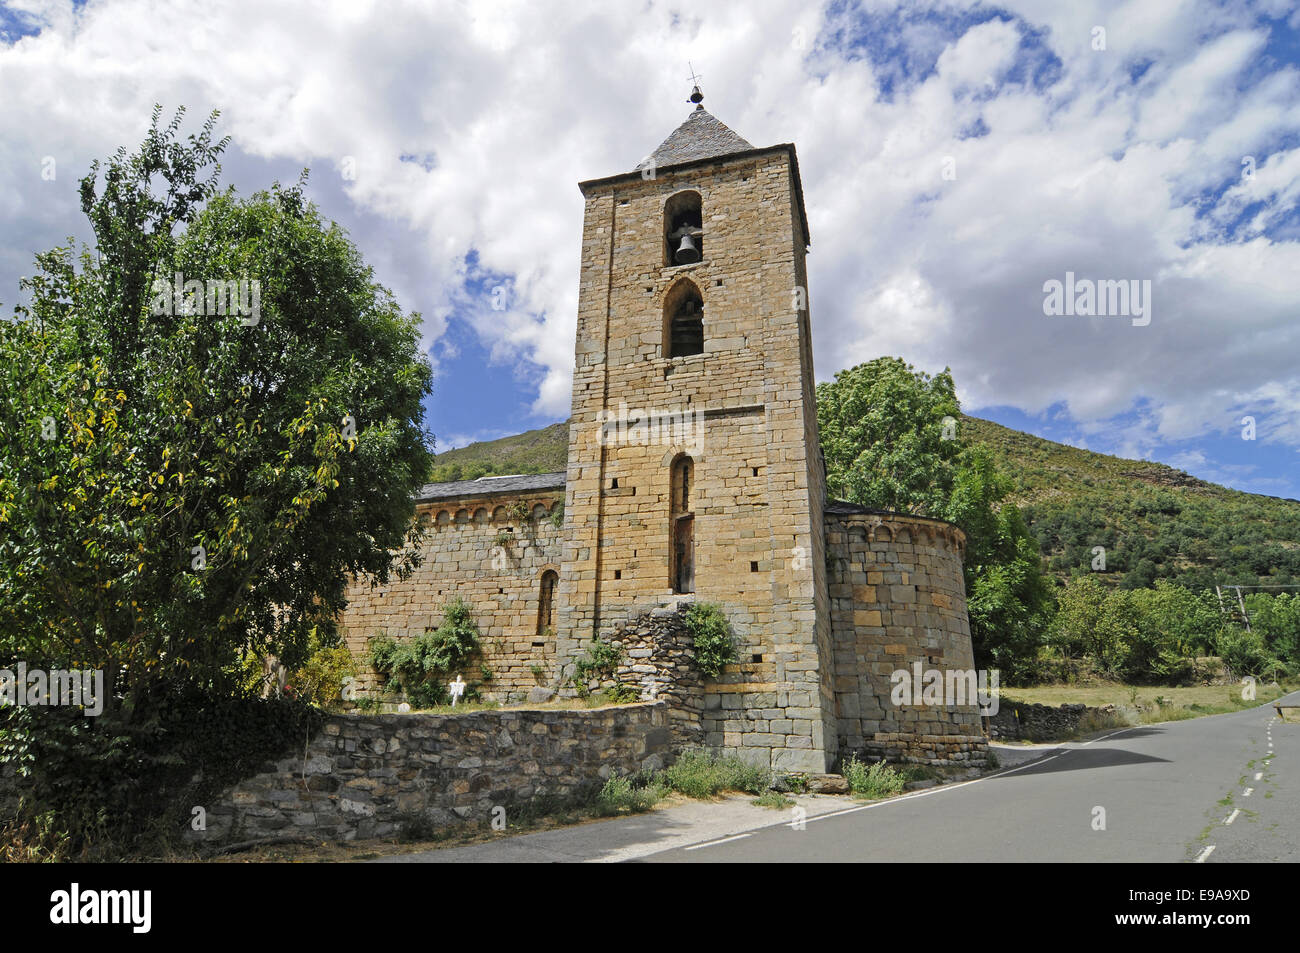 church, Coll, La Vall de Boi, valley, Spain - Stock Image